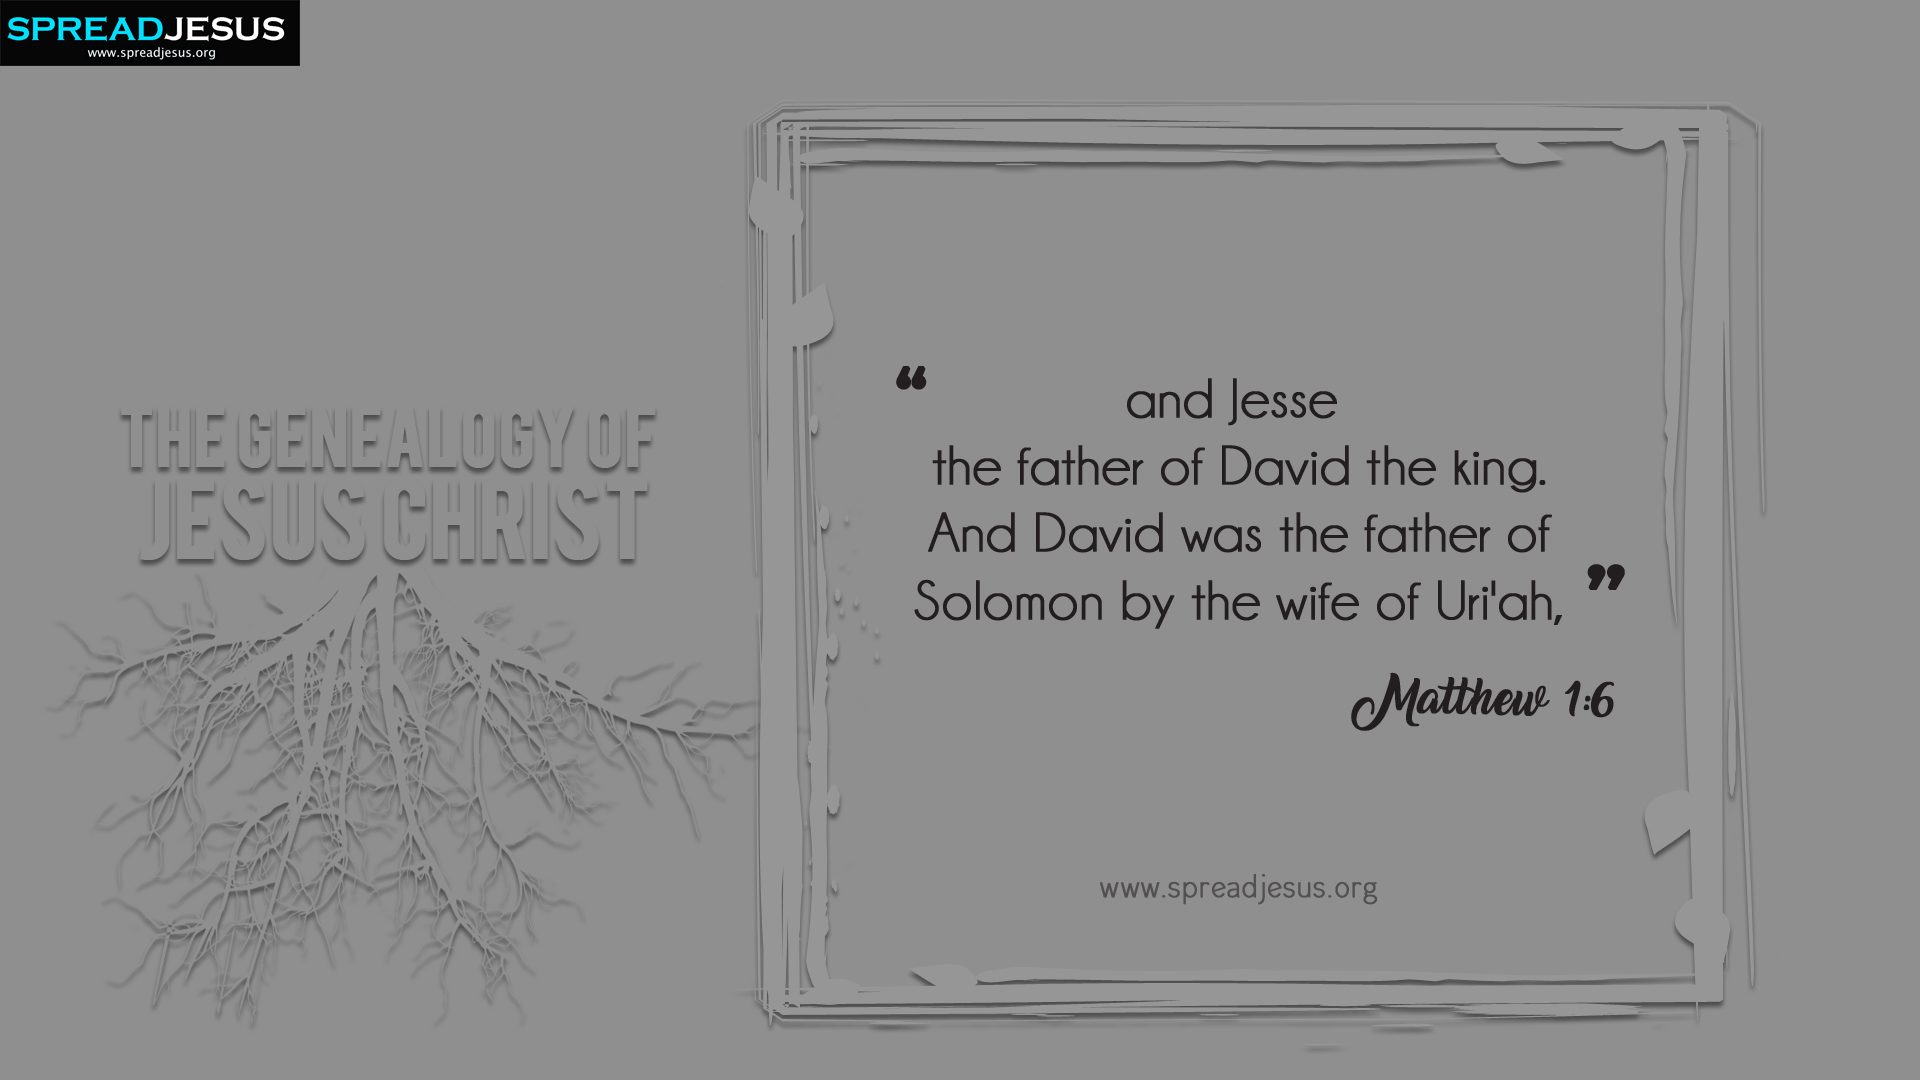 The Genealogy of Jesus Christ Matthew 1:6 HD-Wallpapers